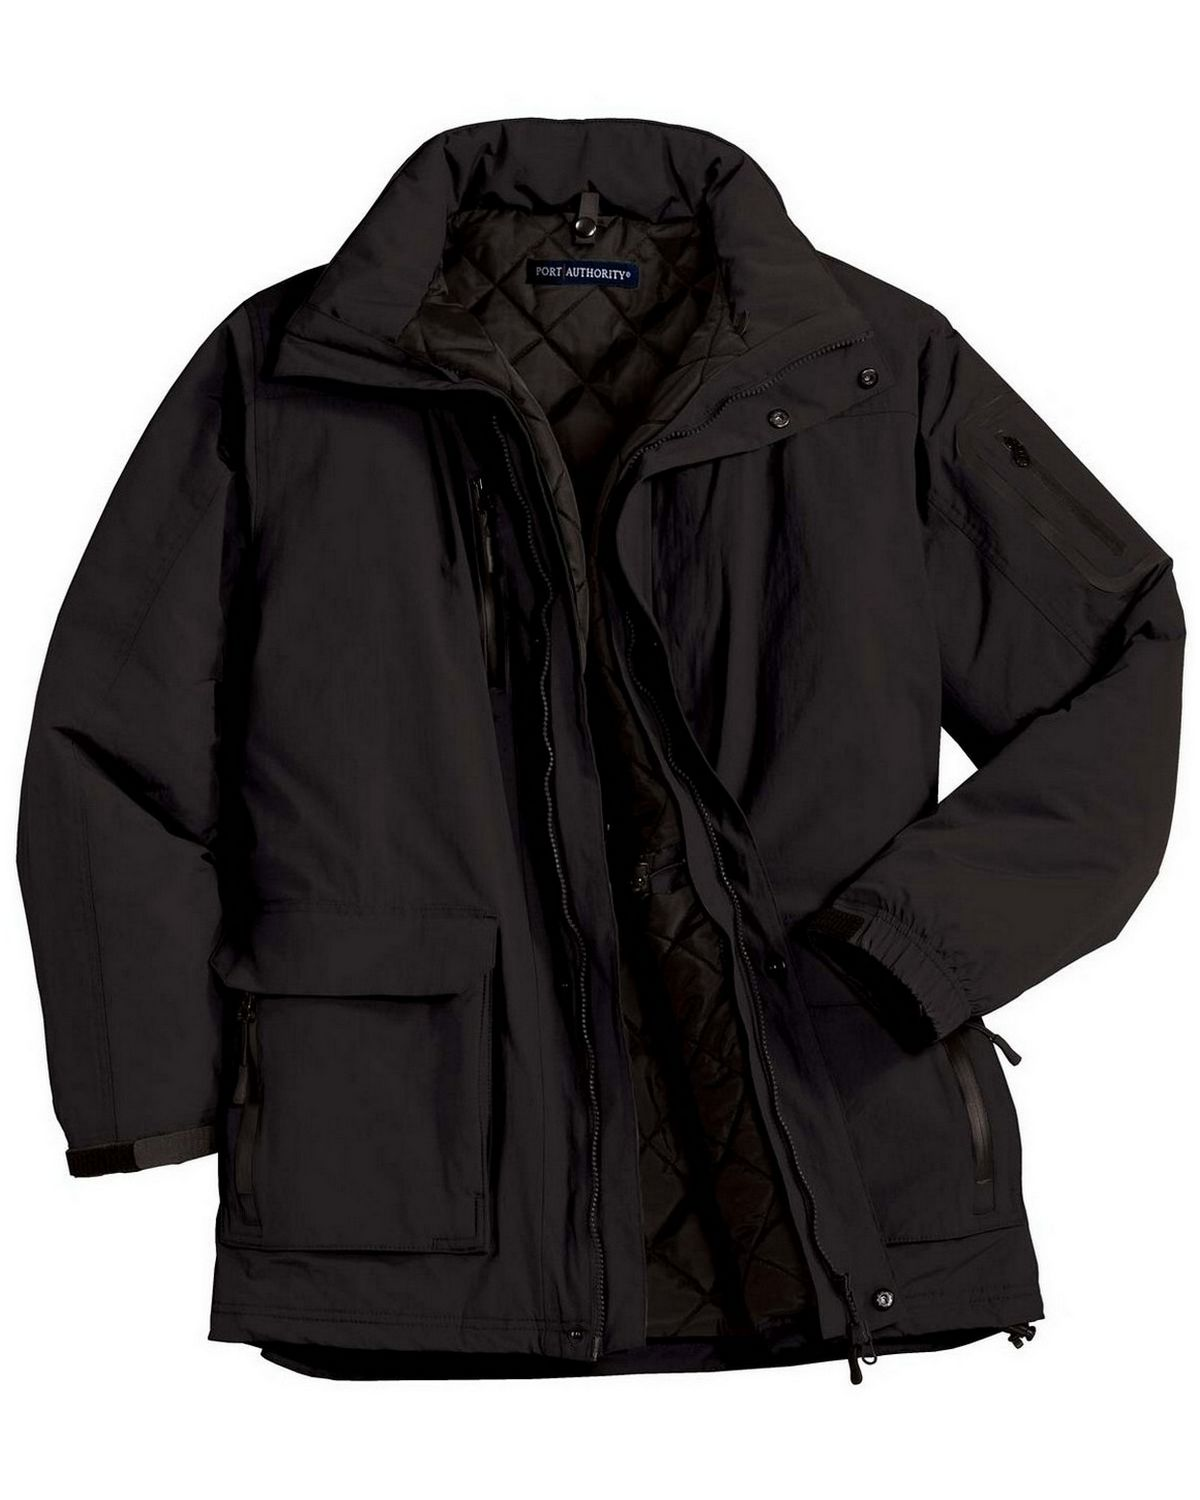 Port Authority J799 Men's Heavyweight Parka - Black - XS from Port Authority